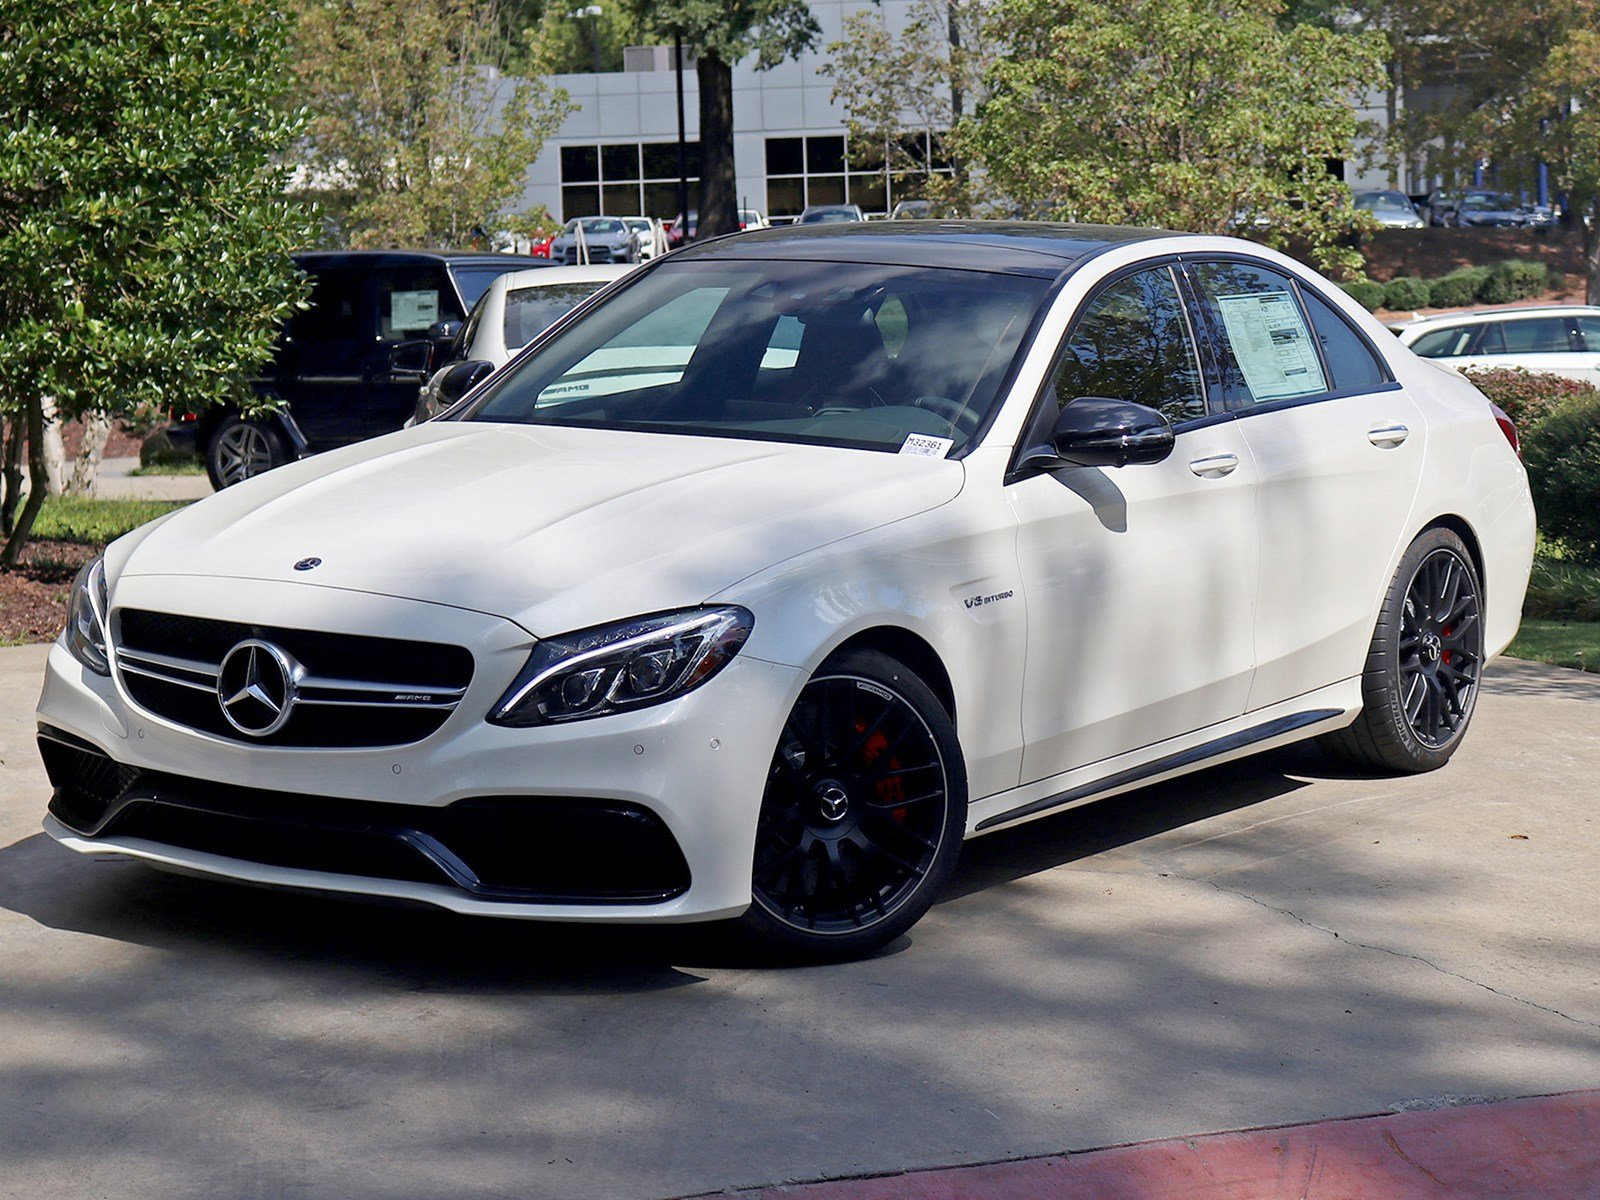 2018 Mercedes C300 Price >> New 2018 Mercedes-Benz C-Class AMG® C 63 S SEDAN in Atlanta #M32361 | RBM of Atlanta